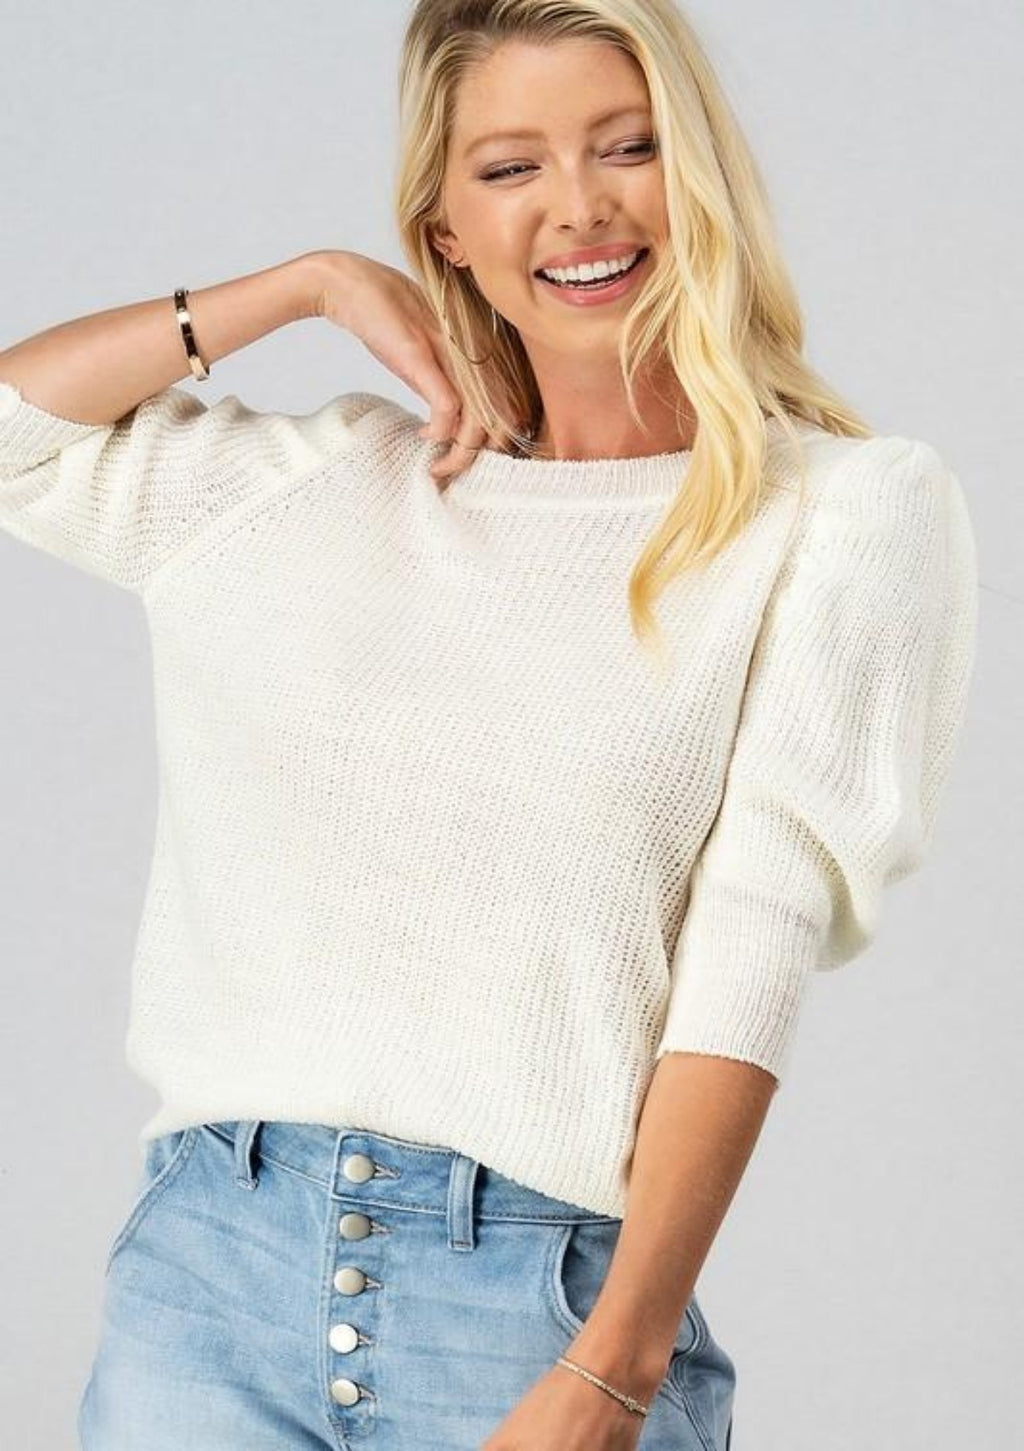 My Best Behavior Knit Top